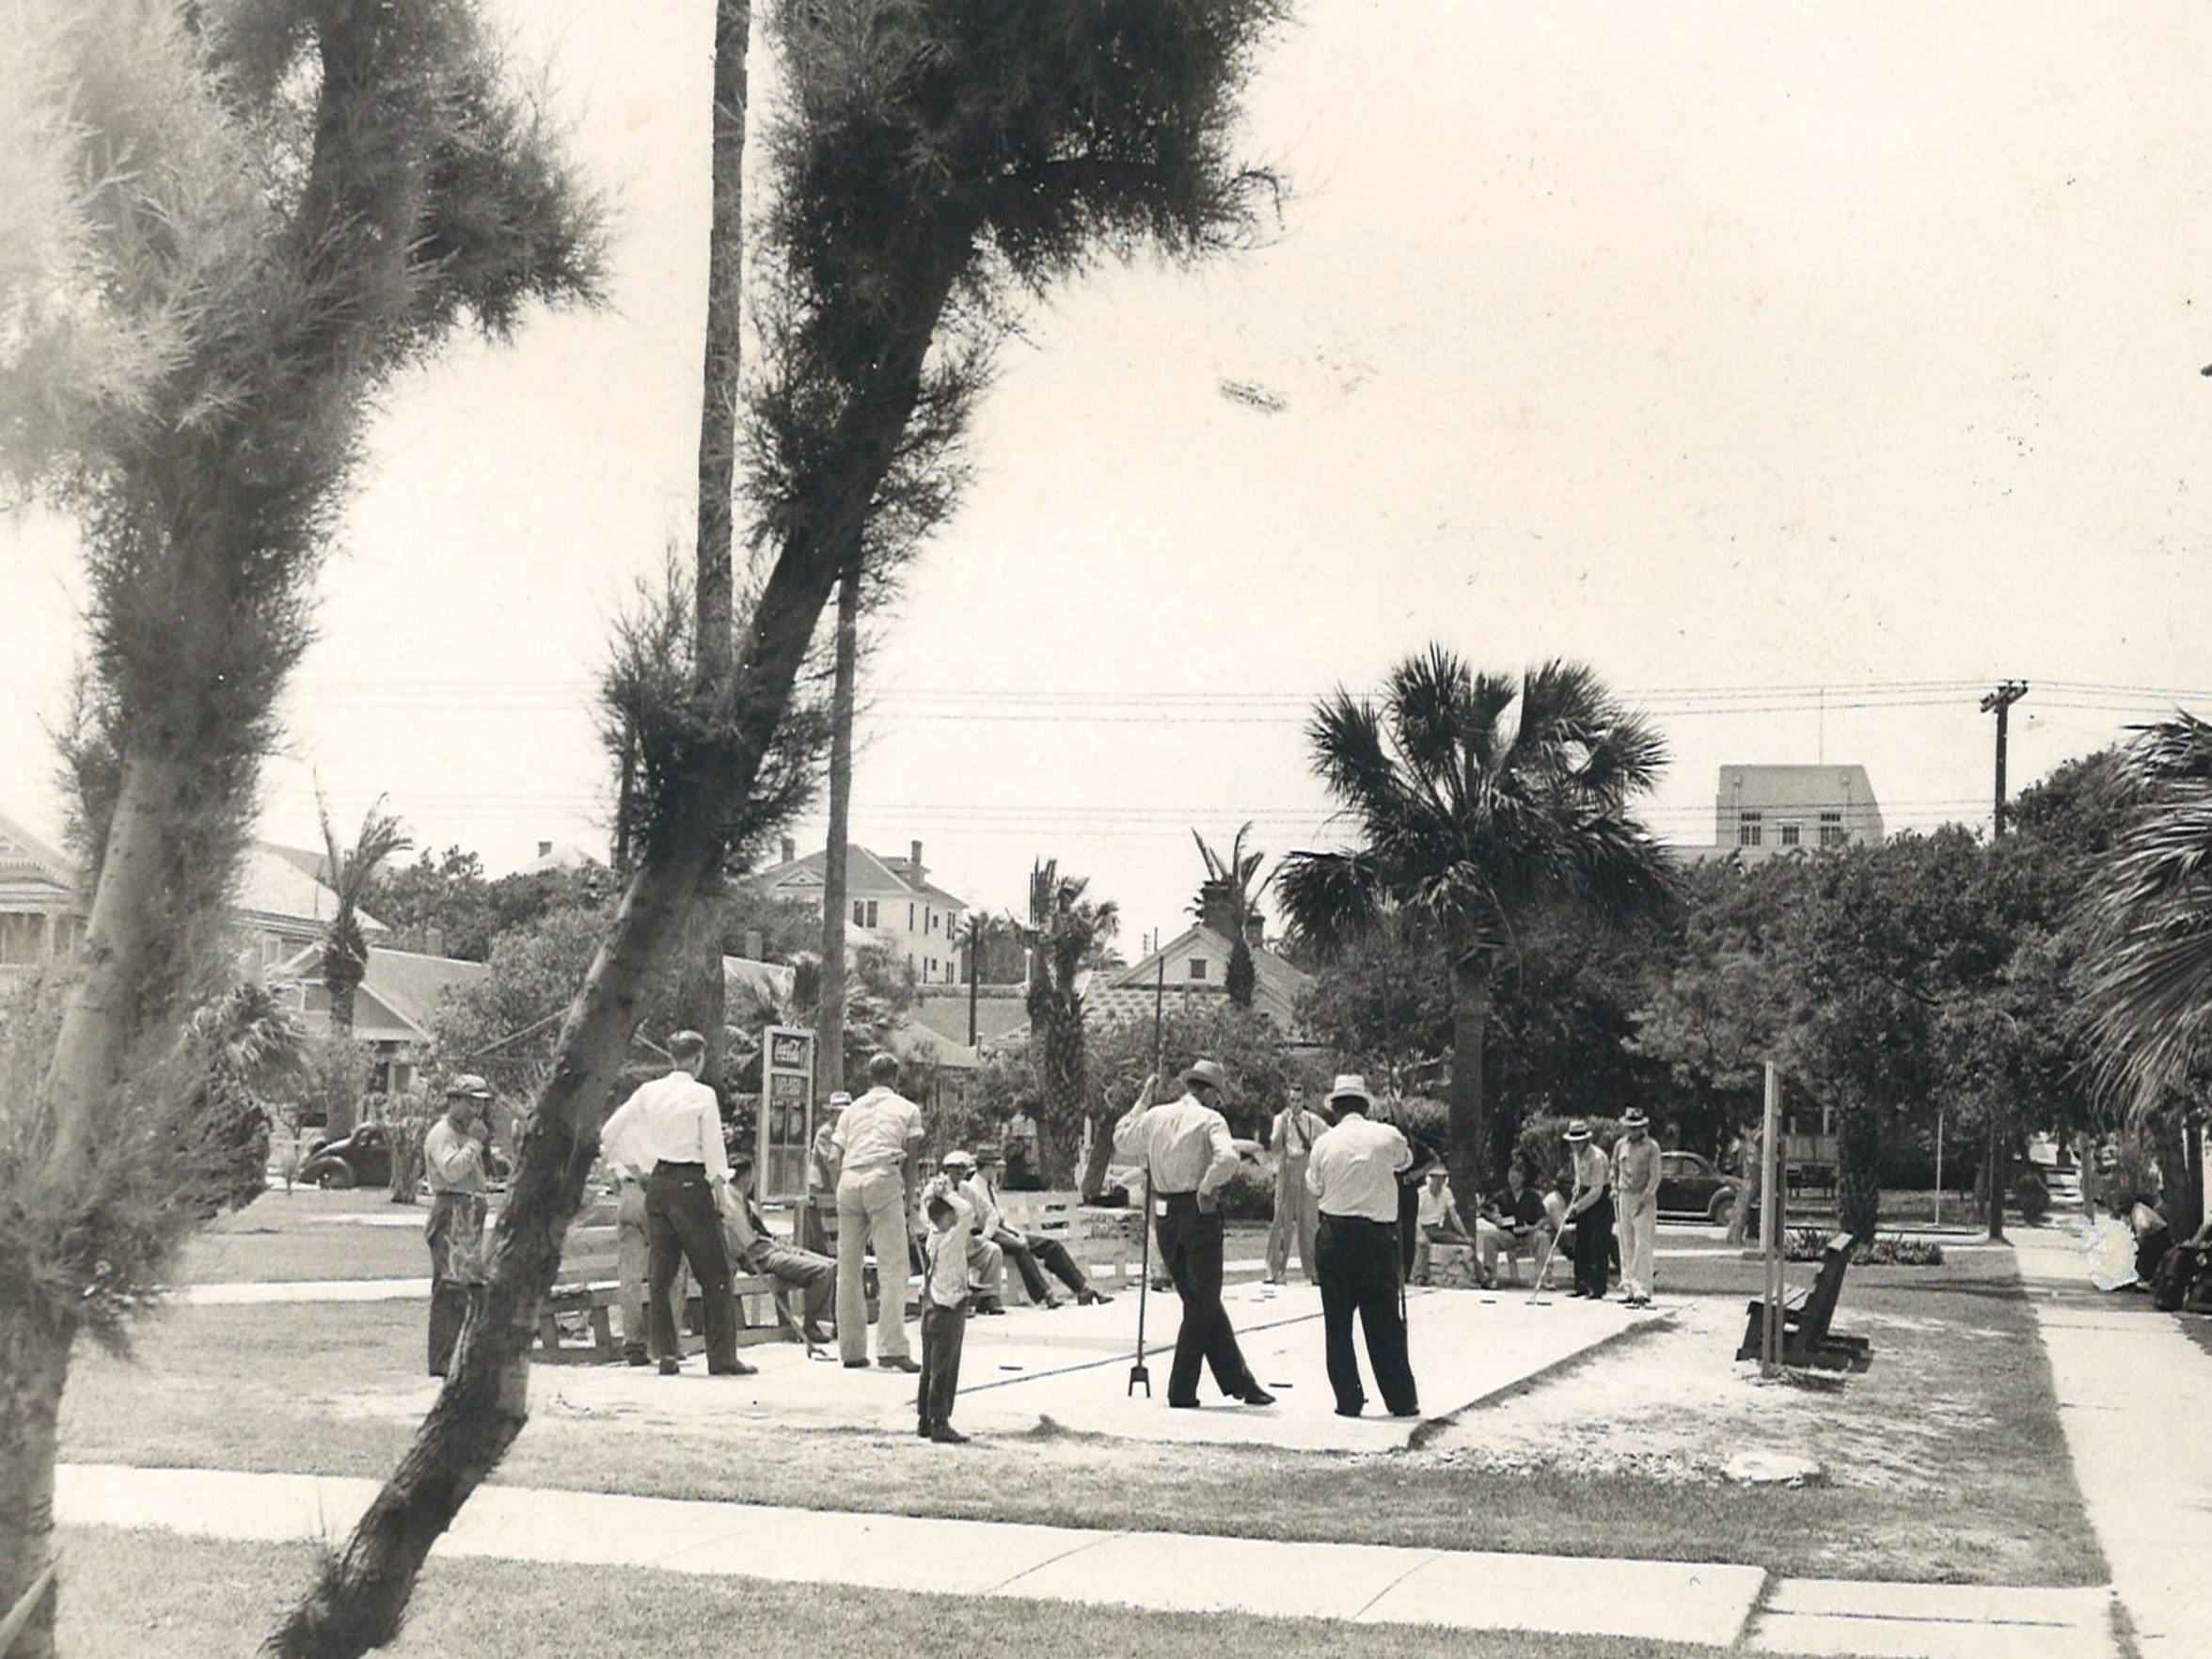 Artesian Park in downtown Corpus Christi, Oct. 23, 1941. Photo by McGregor.